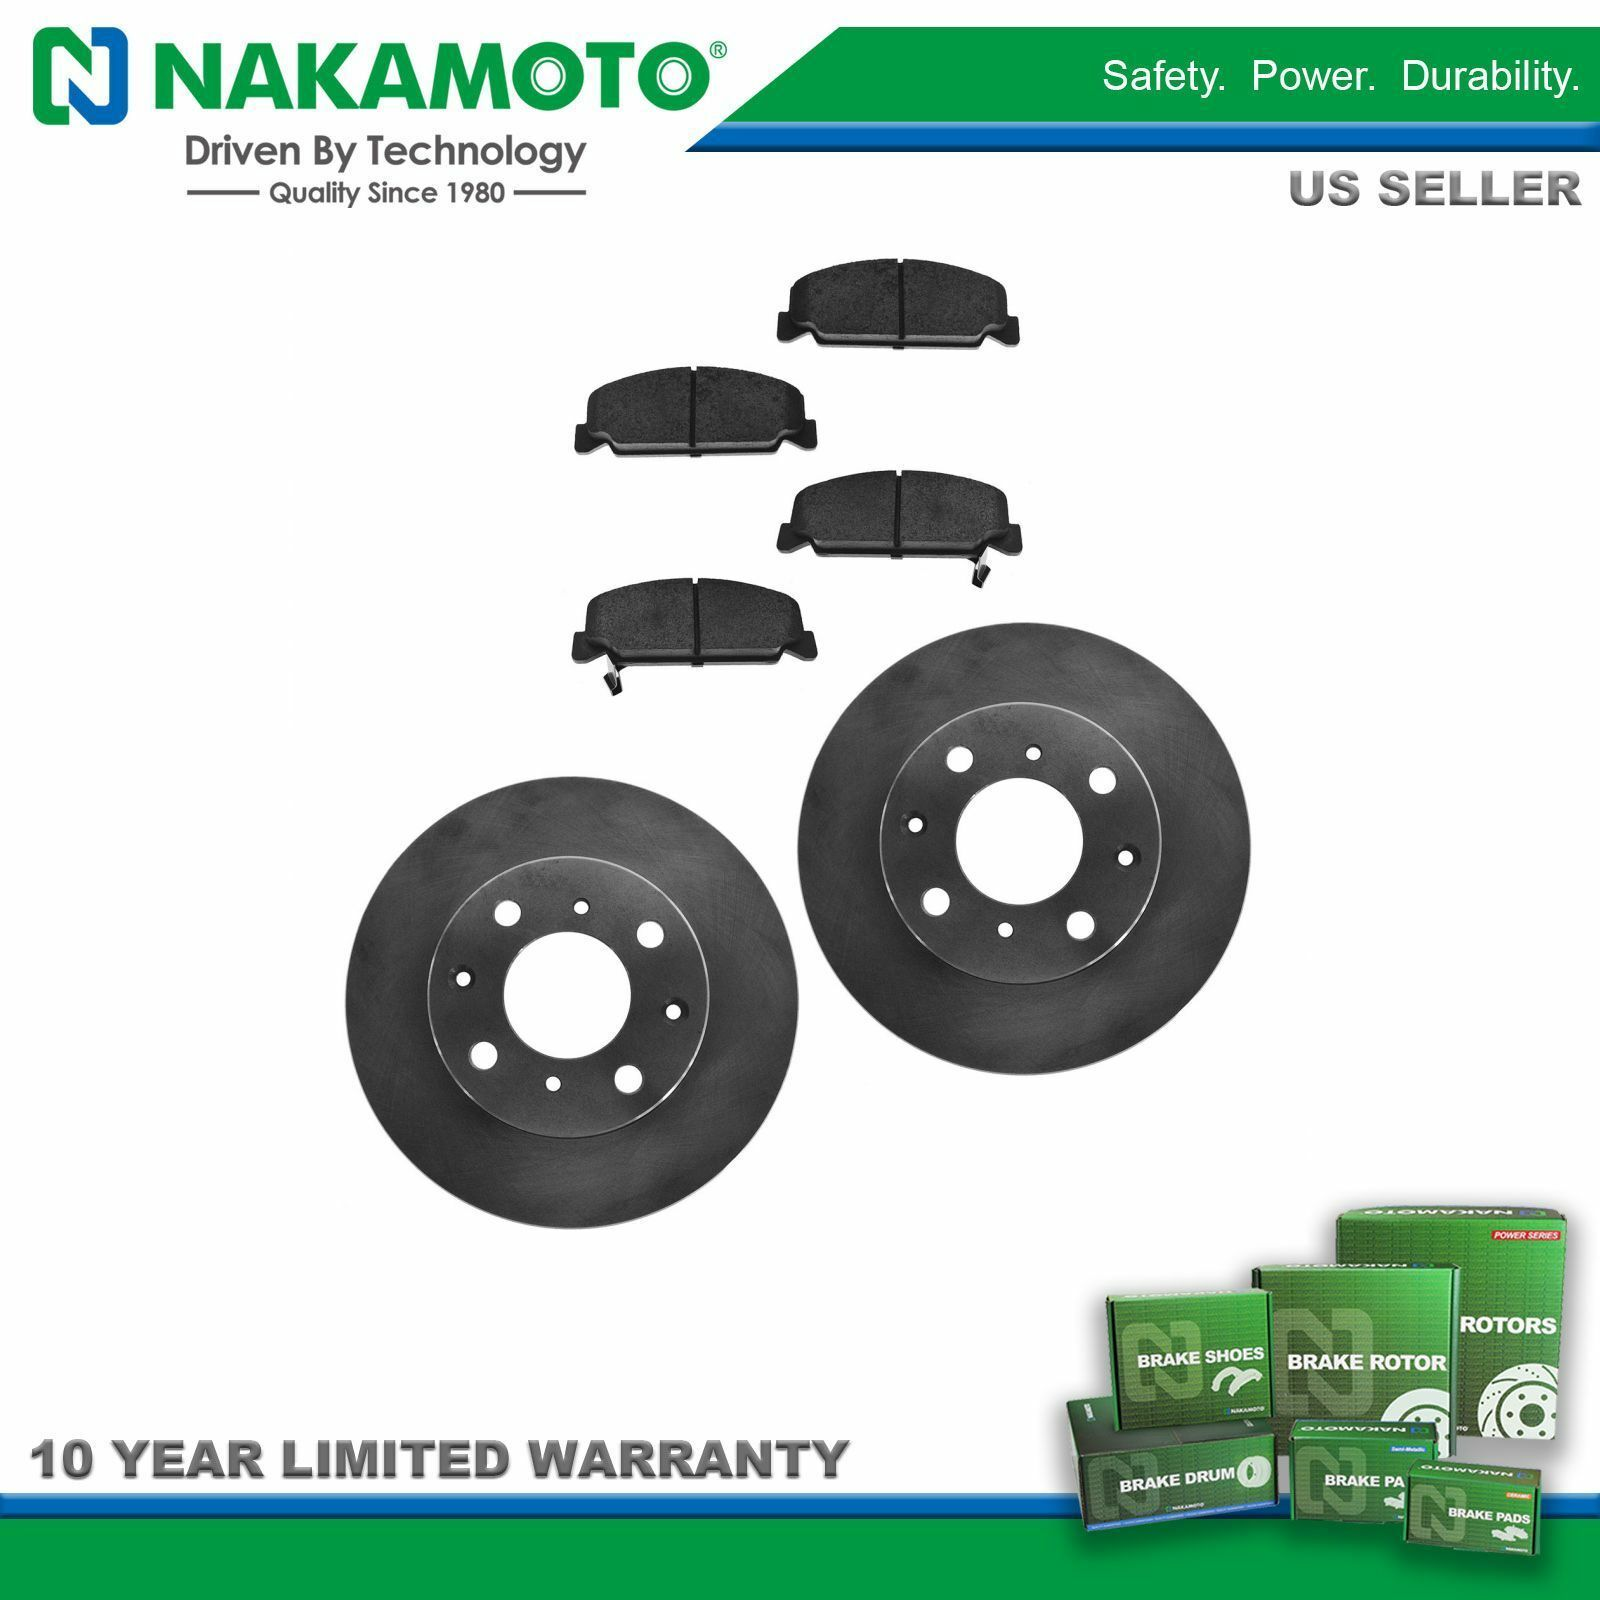 Brake Pads And Rotors Prices >> Nakamoto Front Disc Brake Pads Rotors Kit Set For Honda